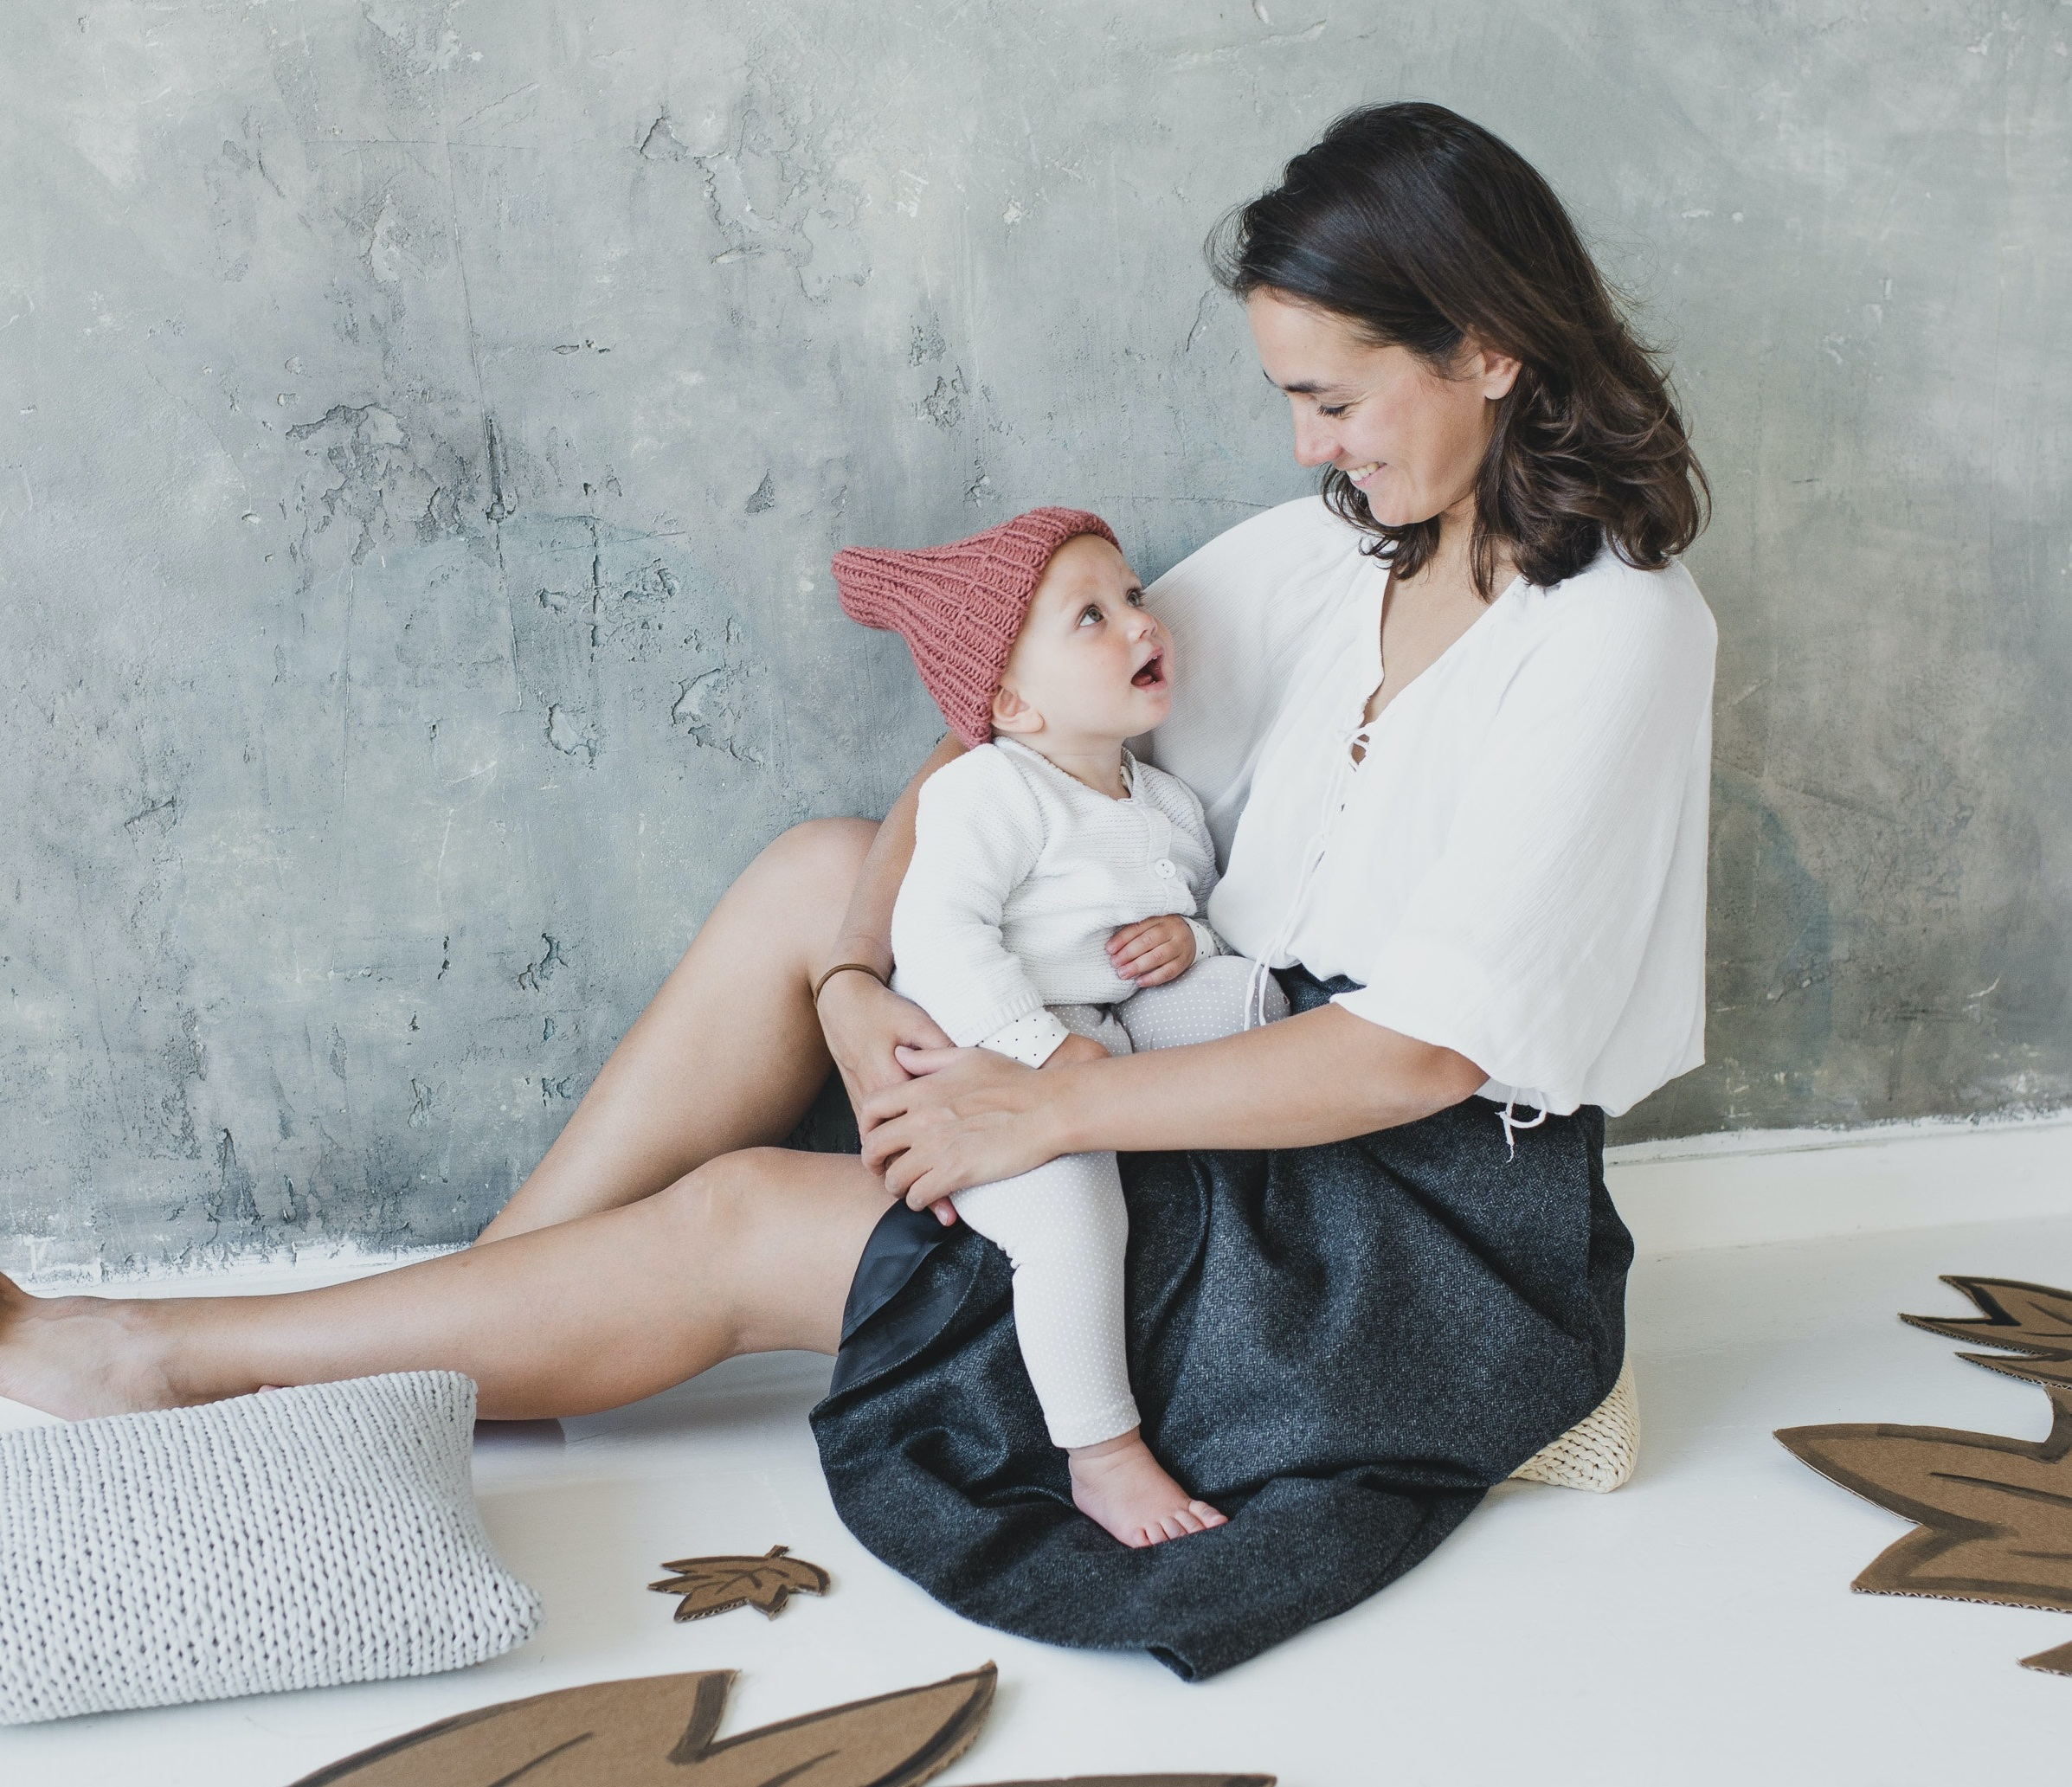 10 Coworking Spaces, Resources, and Products For New Moms Returning To The Office